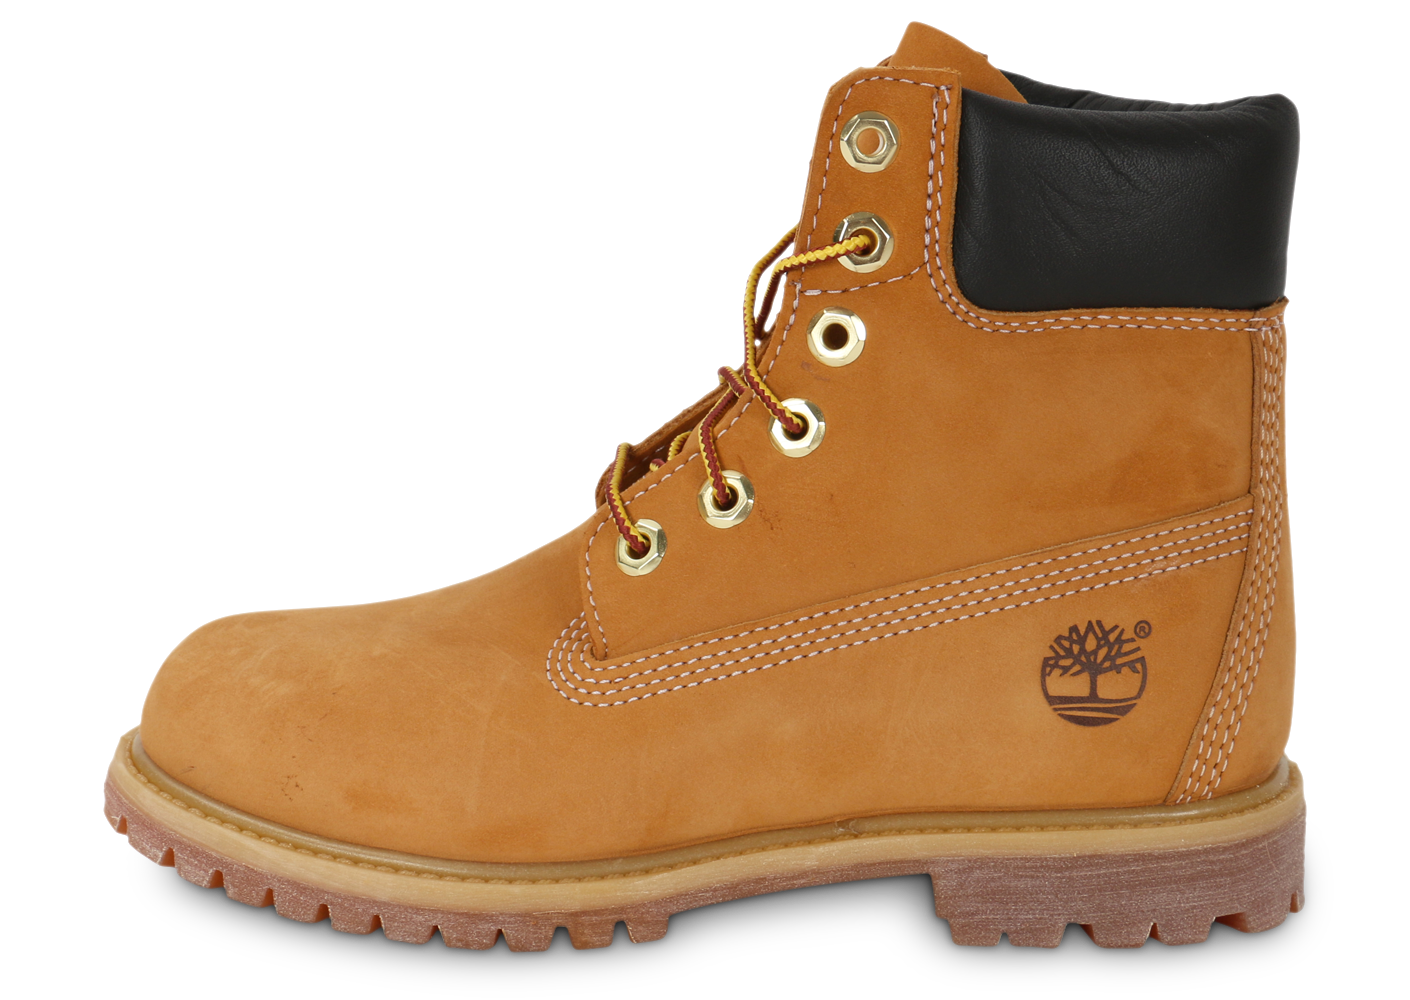 Timberland femme 6-inch premium boot f beige boots